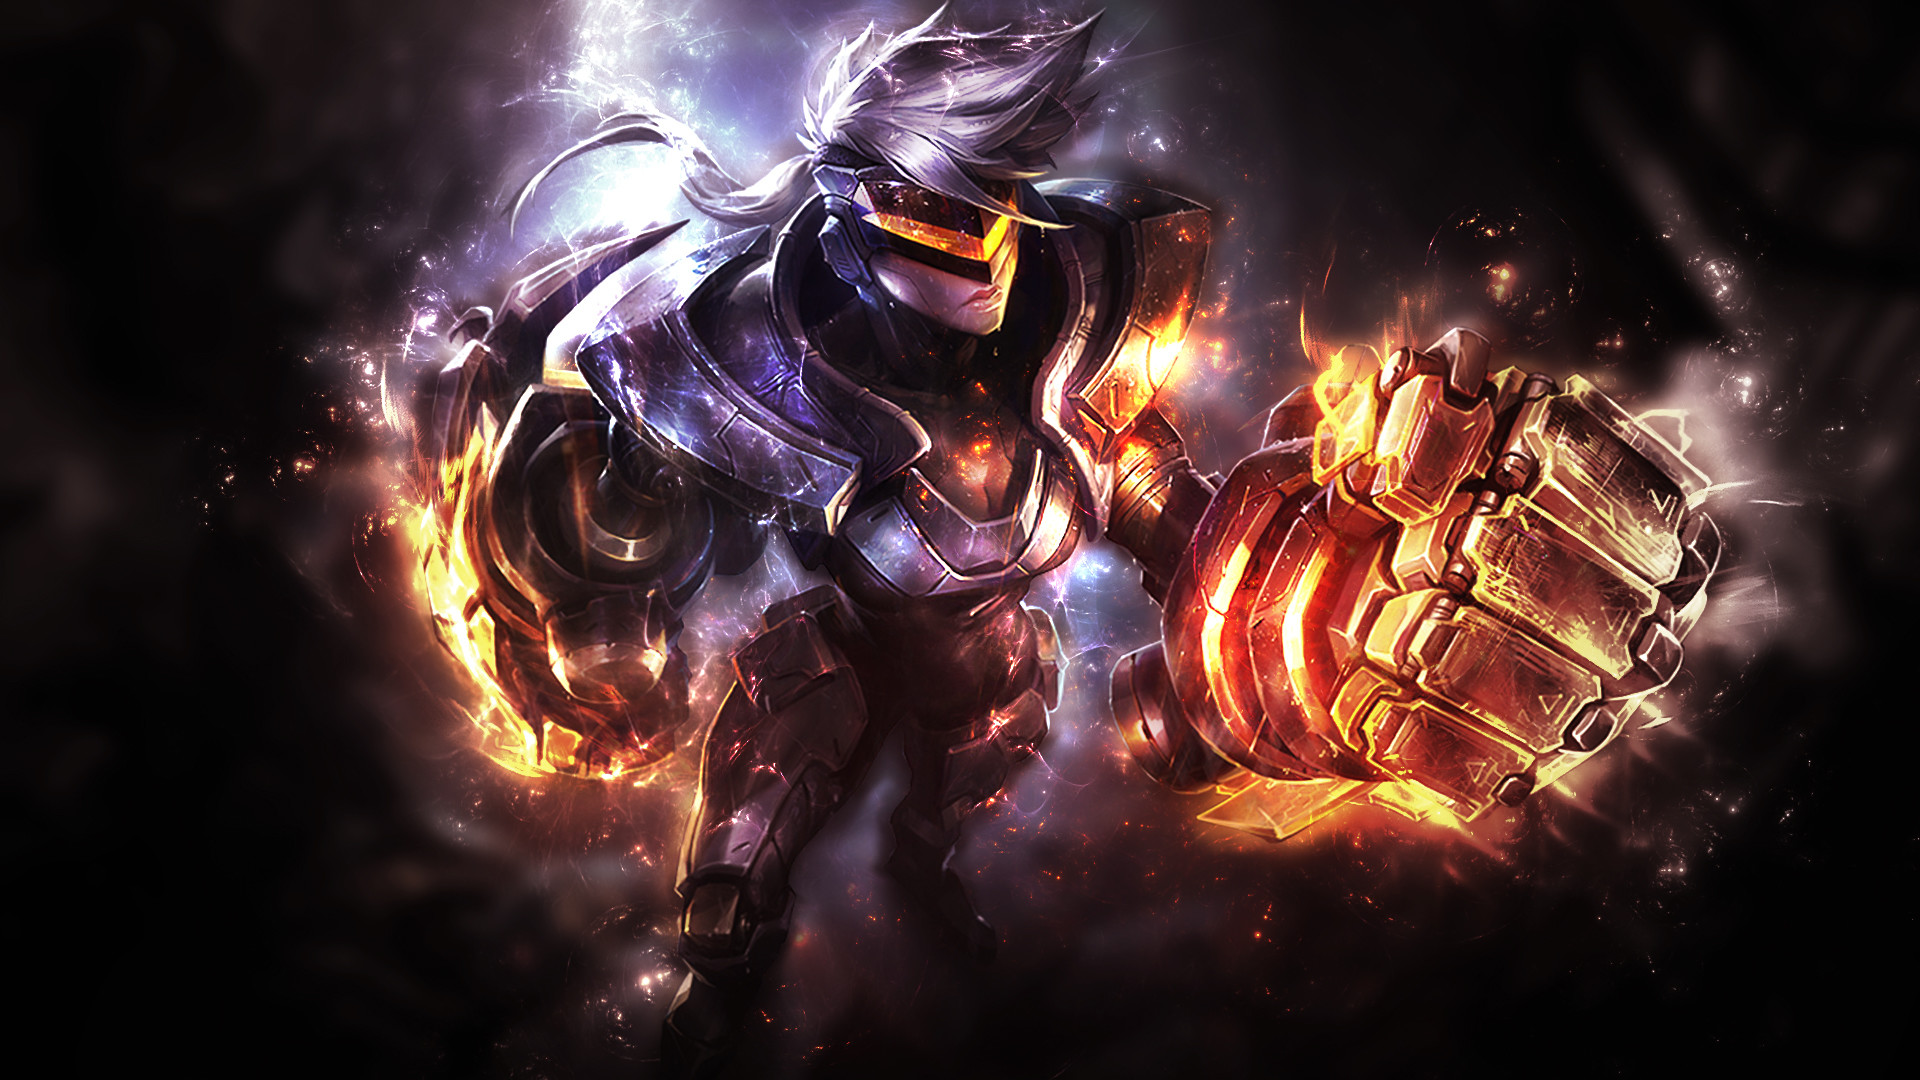 1920x1080 ... League of Legends - PROJECT: Vi Wallpaper by Mr-Booker